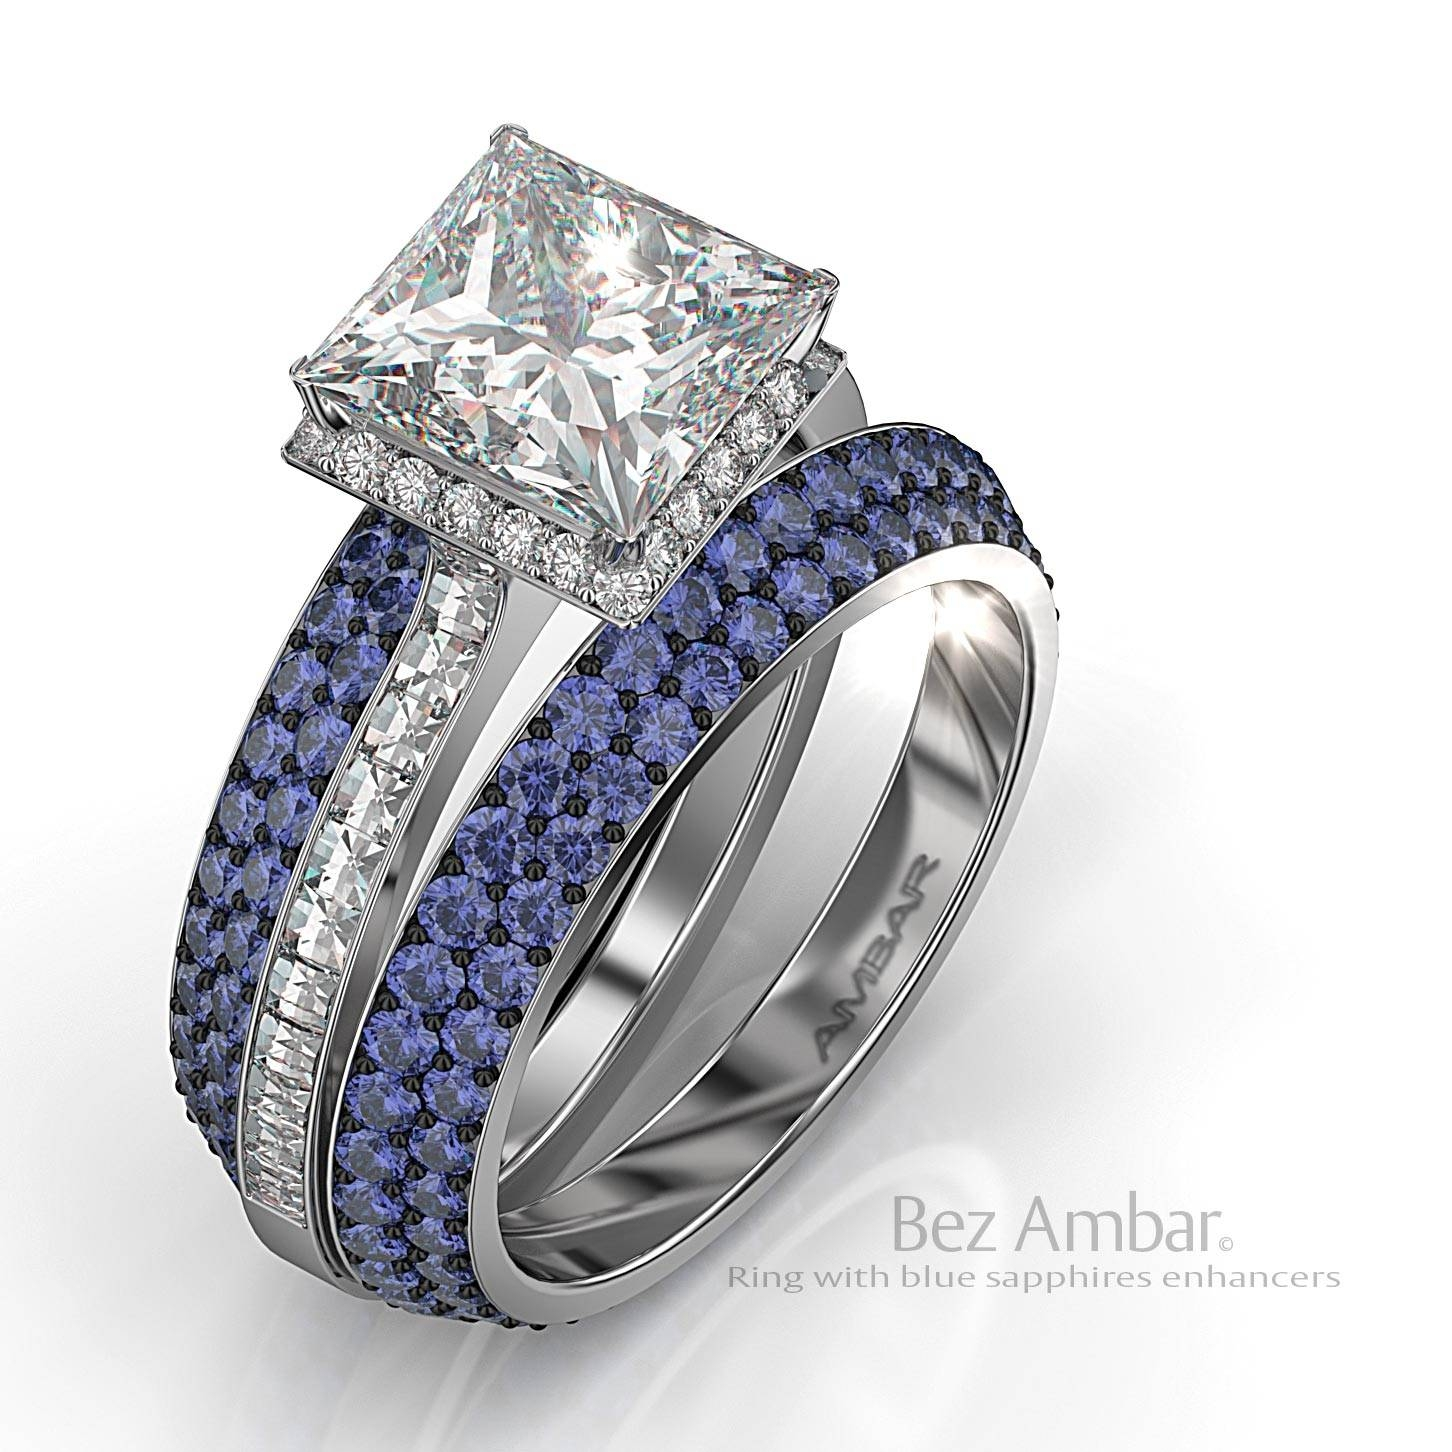 Silvet Blaze Engagement Ring Set With Peridot Frame Pertaining To Blue Sapphire Wedding Rings (View 14 of 15)